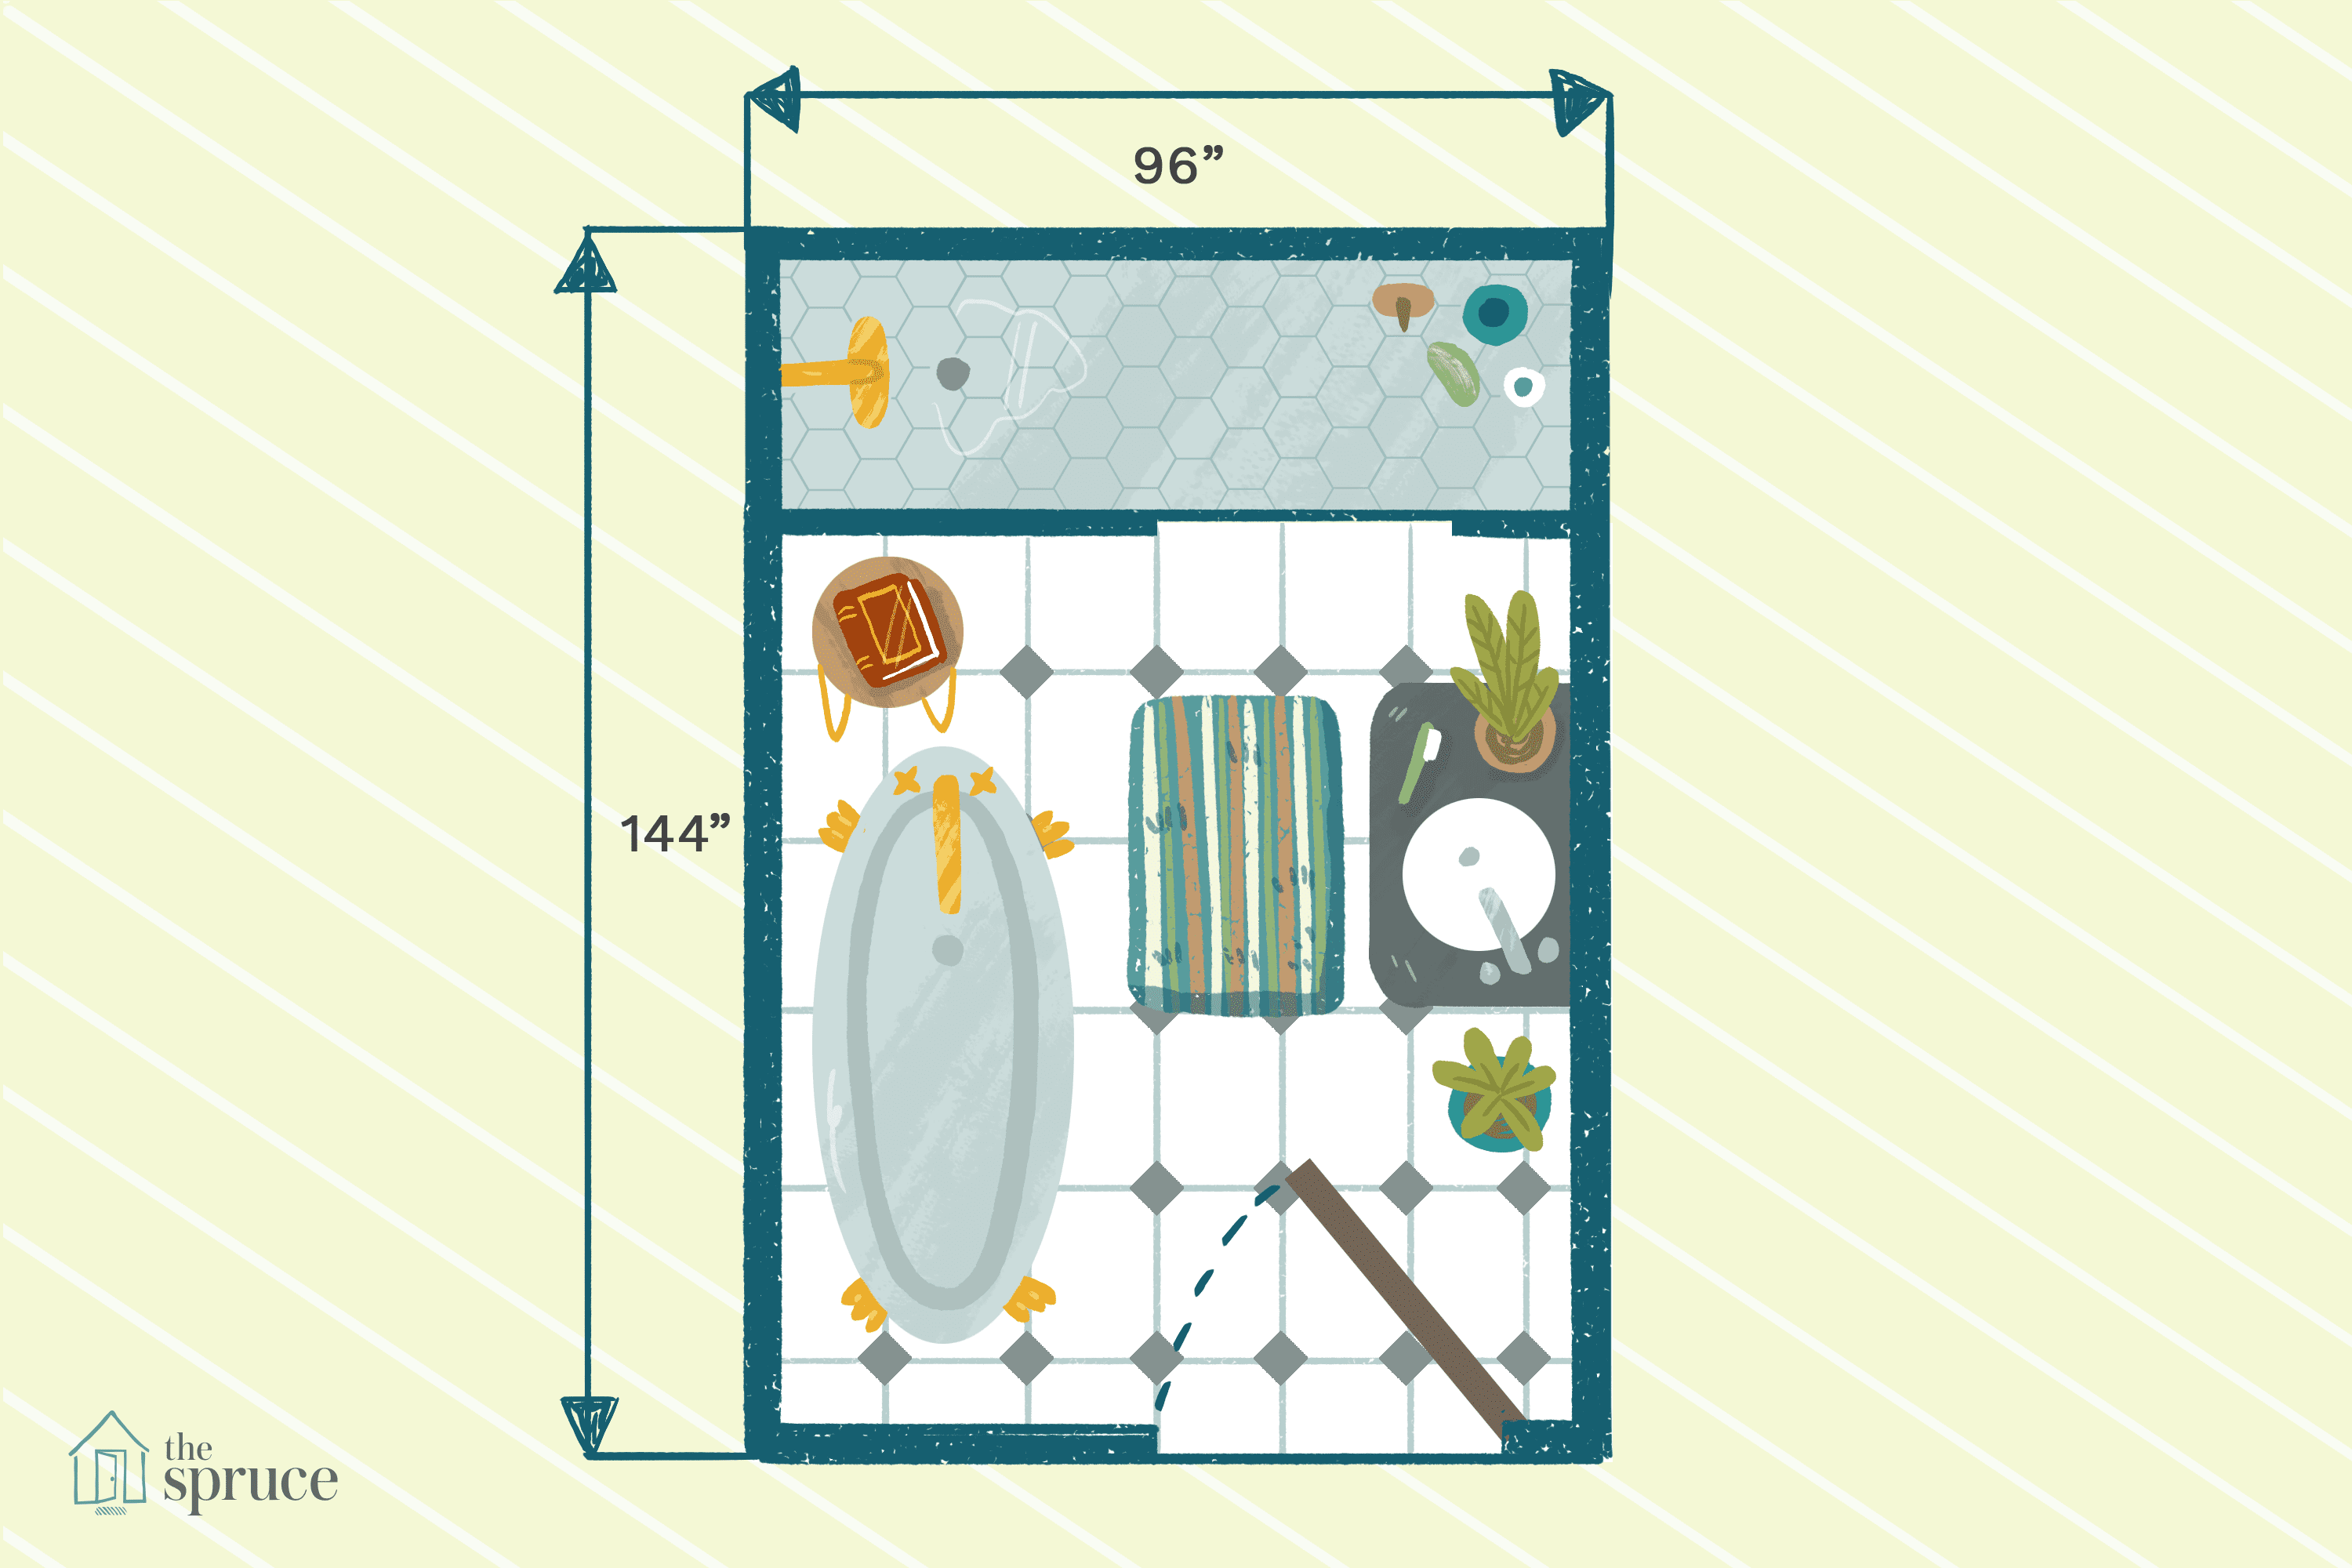 """Illustration of bathroom floor plan with shower and tub measuring 96""""x144""""."""